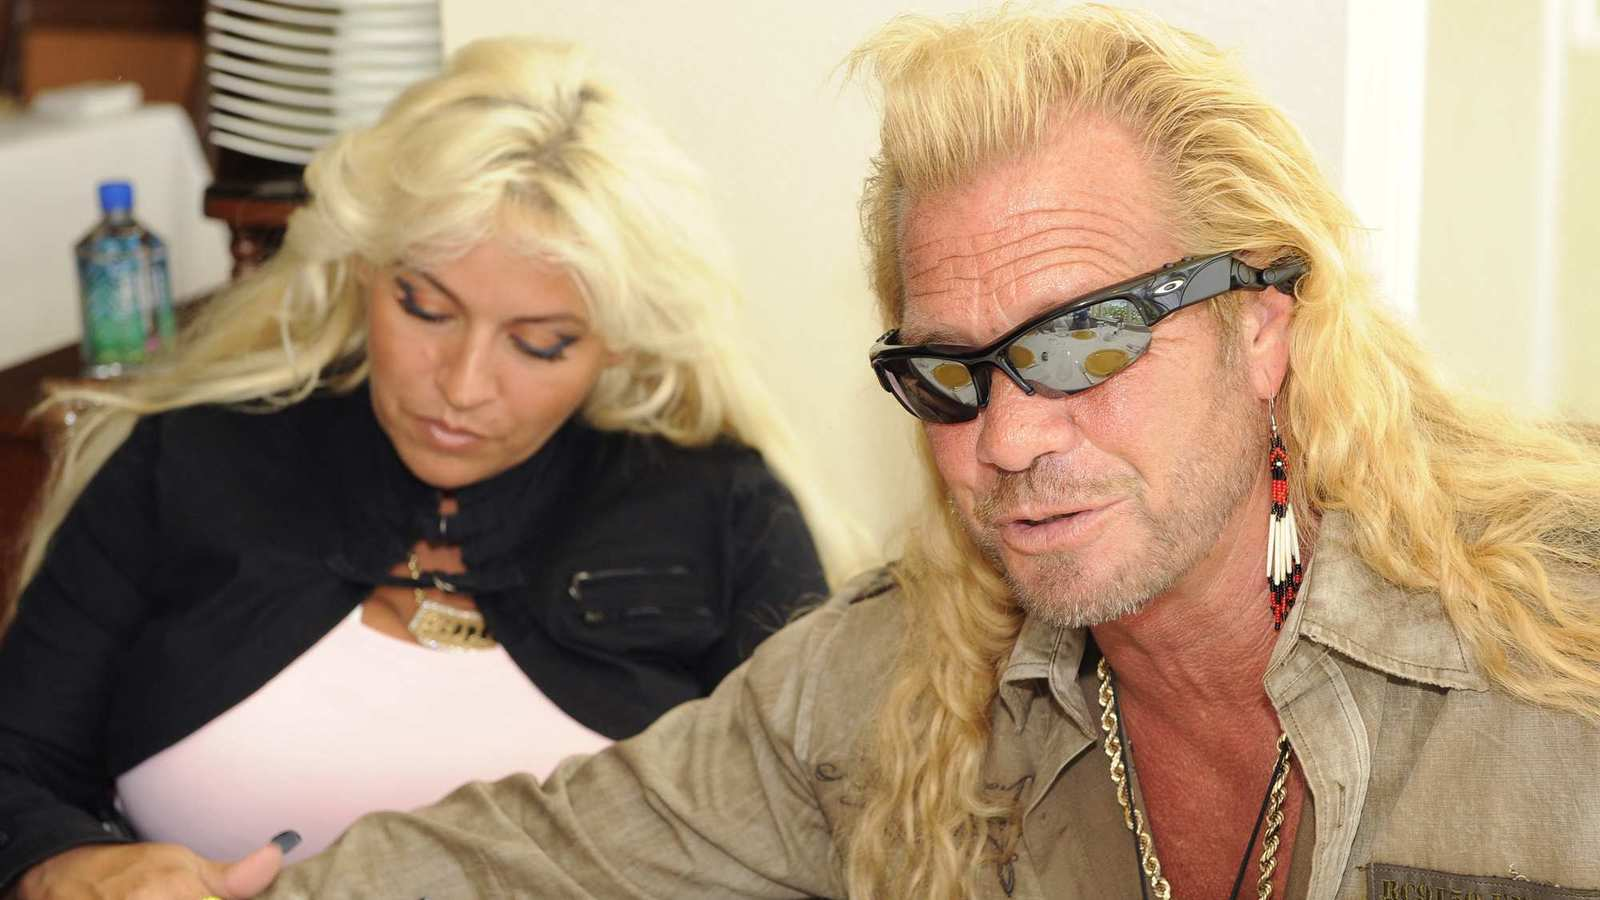 Duane and Beth Chapman (Ronen Zilberman / Associated Press)